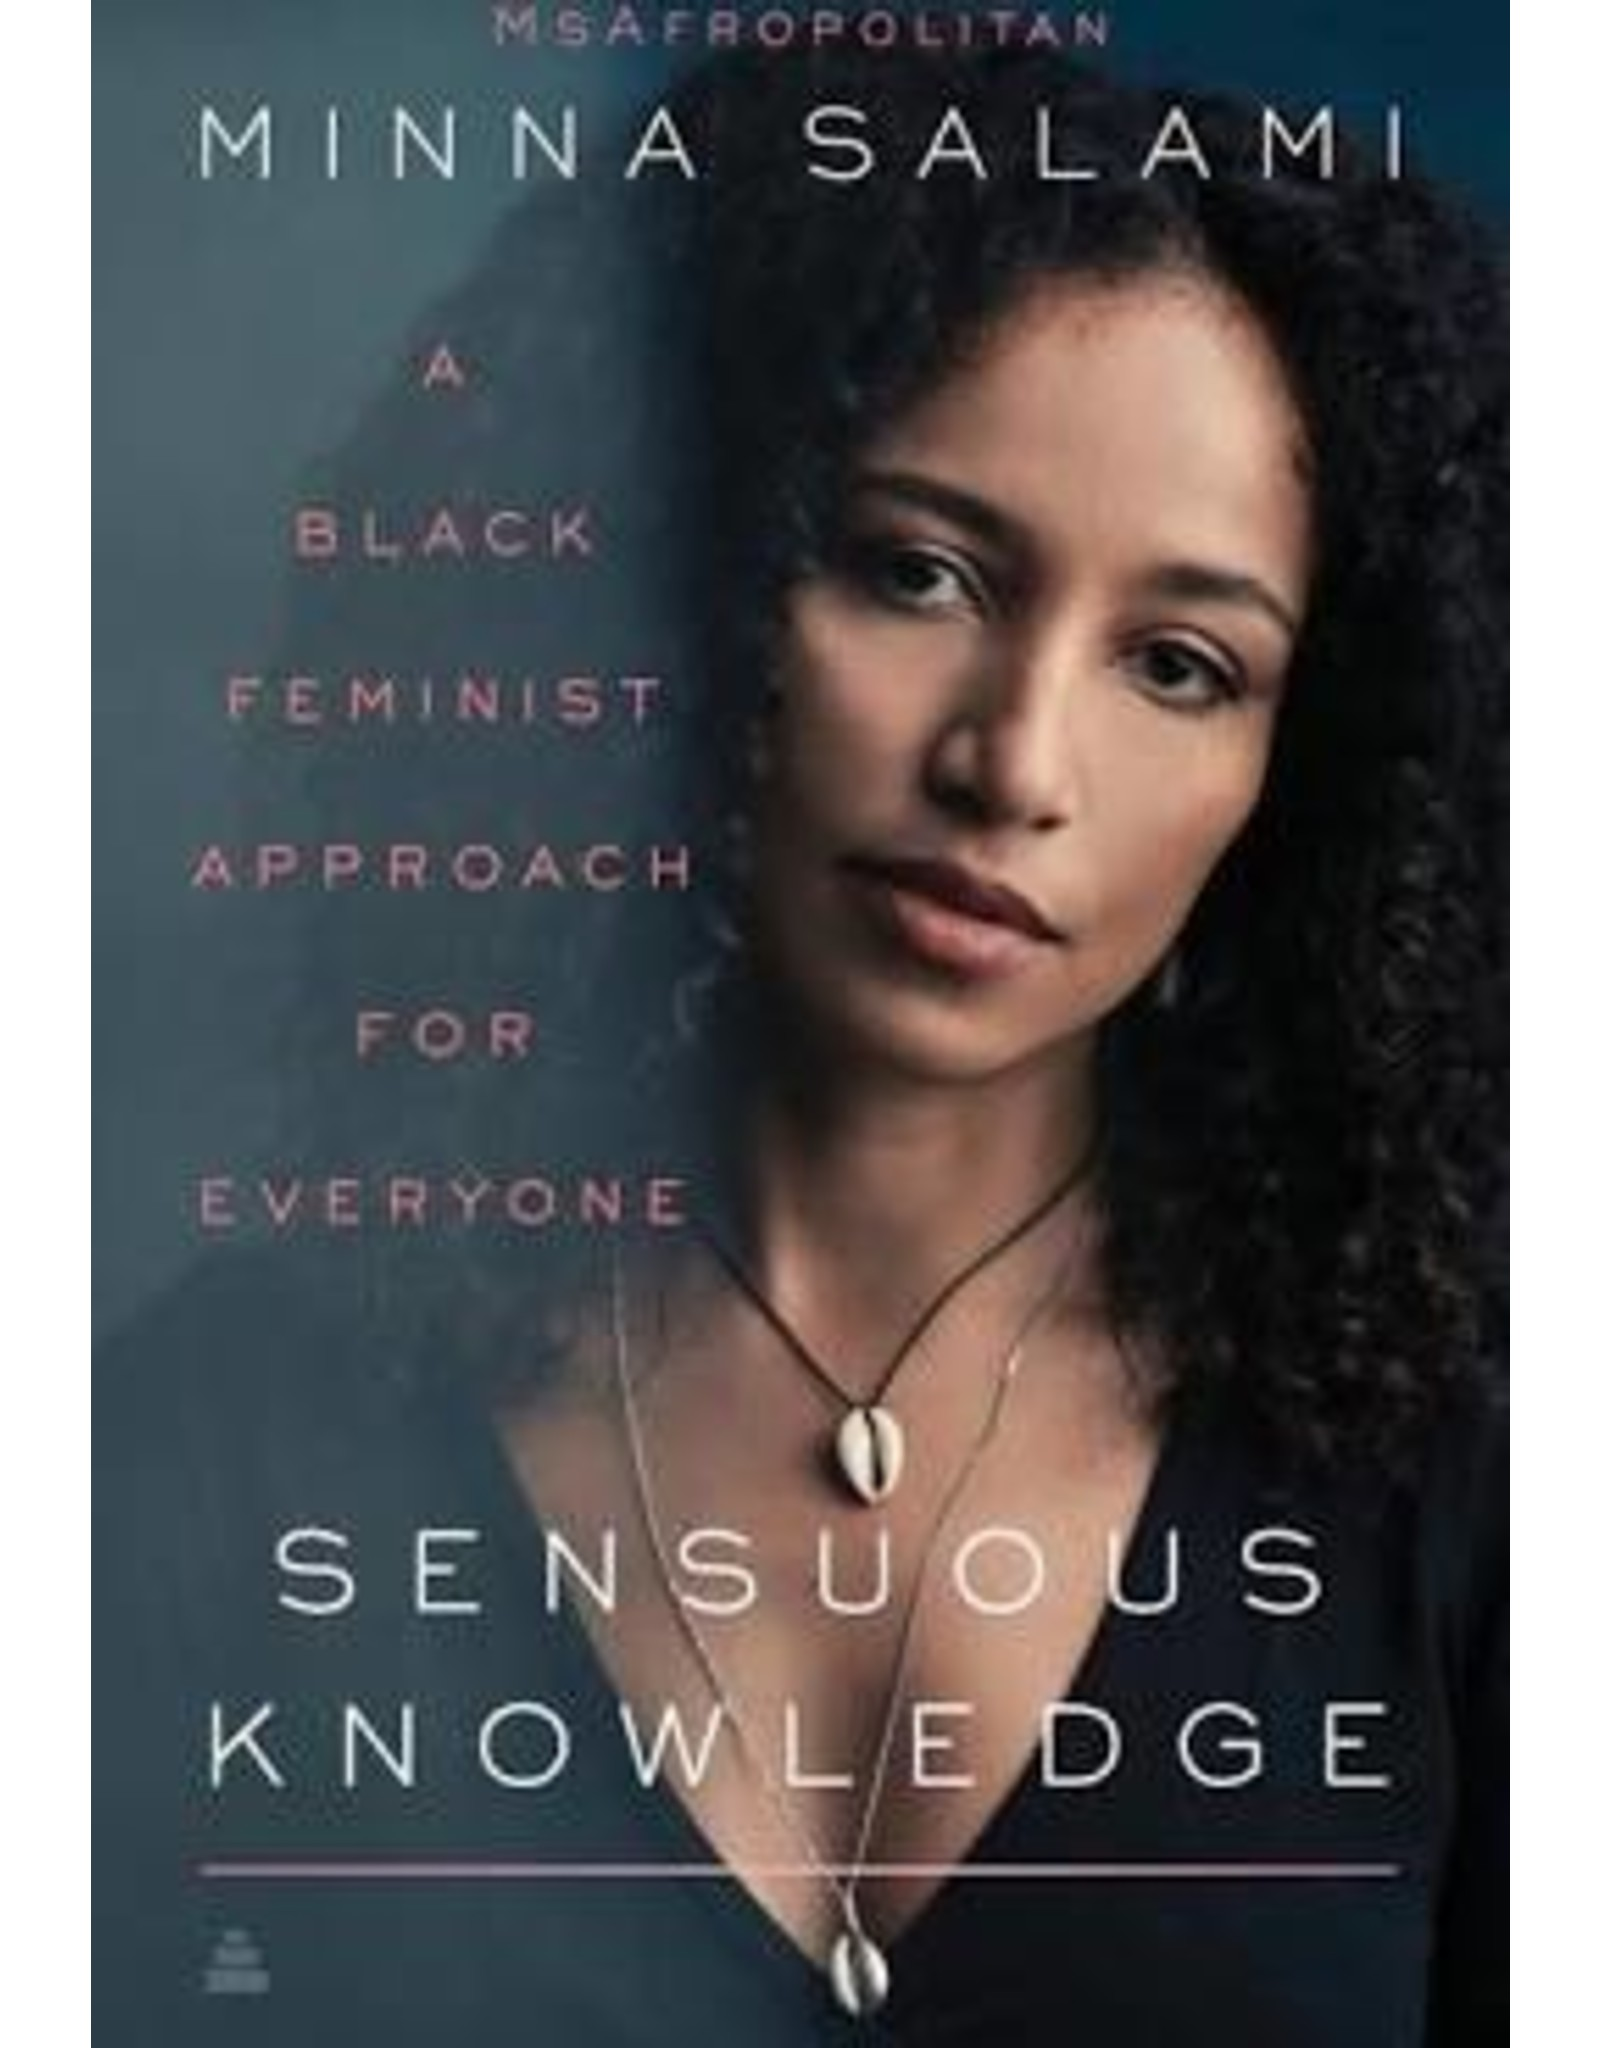 Books Sensuous Knowledge: A Black Feminist Approach for Everyone by Minna Salami